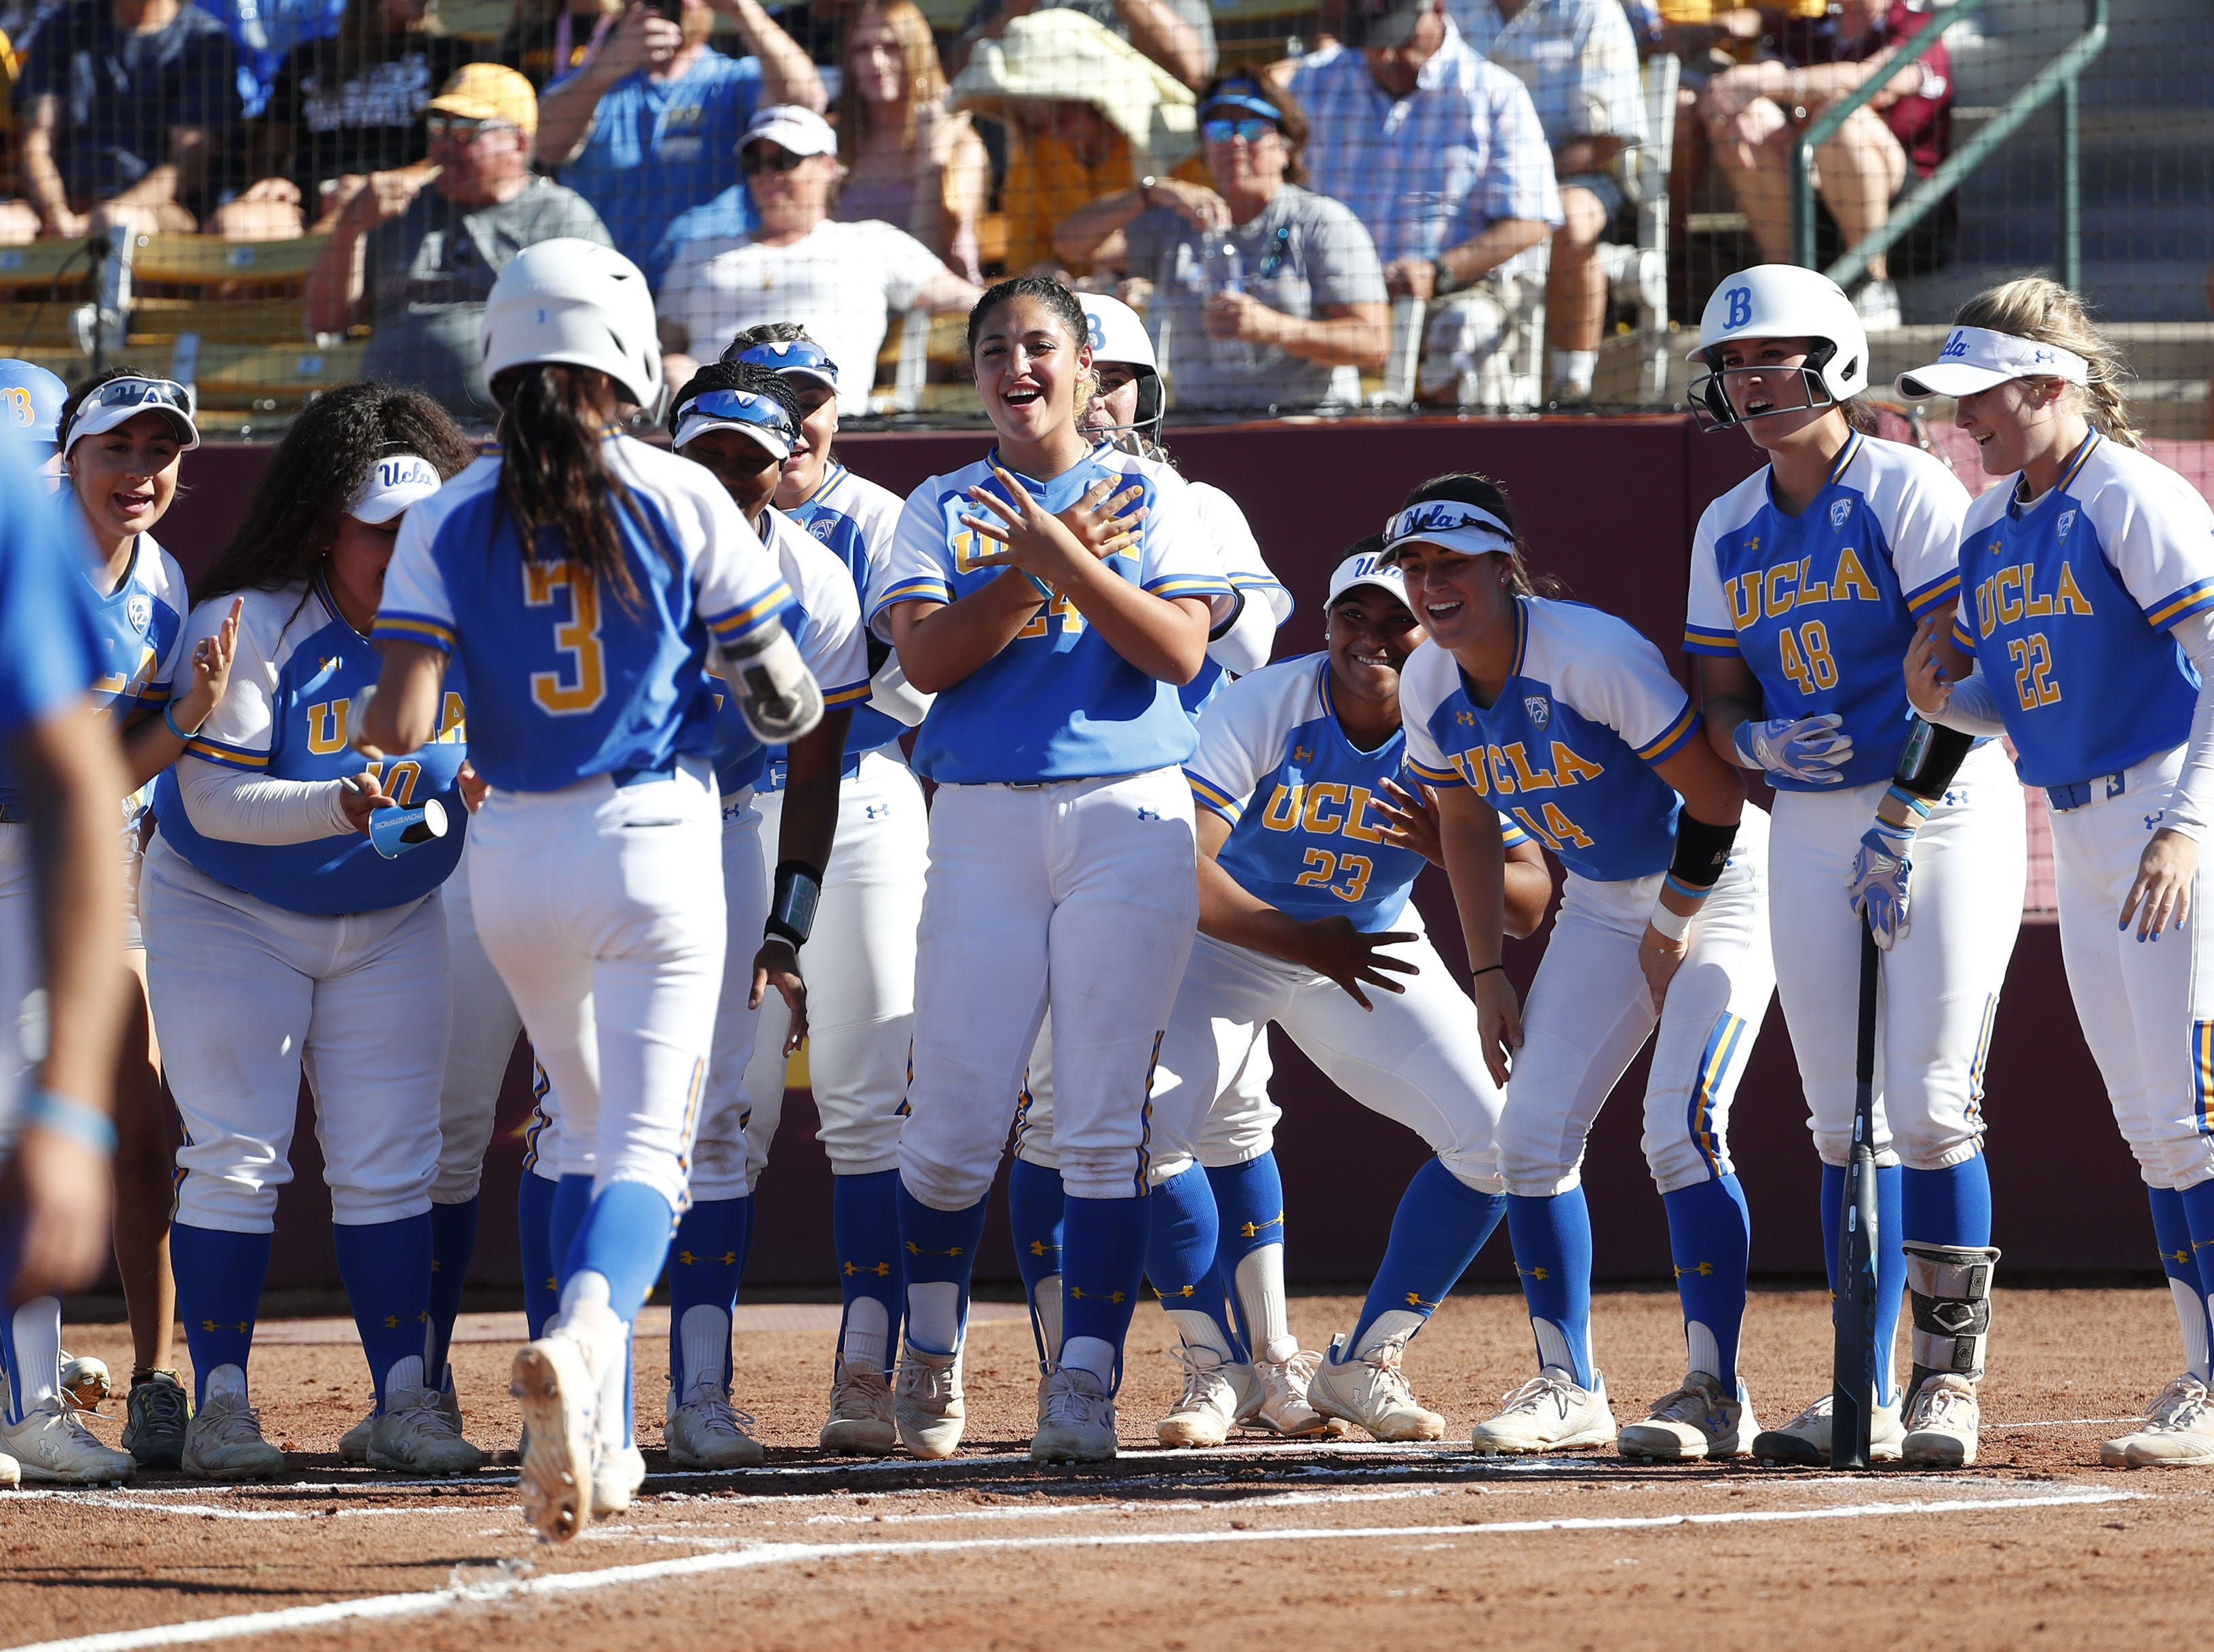 UCLA's Briana Perez is greeted at home after her solo home run against ASU during the first inning at Farrington Stadium in Tempe, Ariz. April 7, 2019.